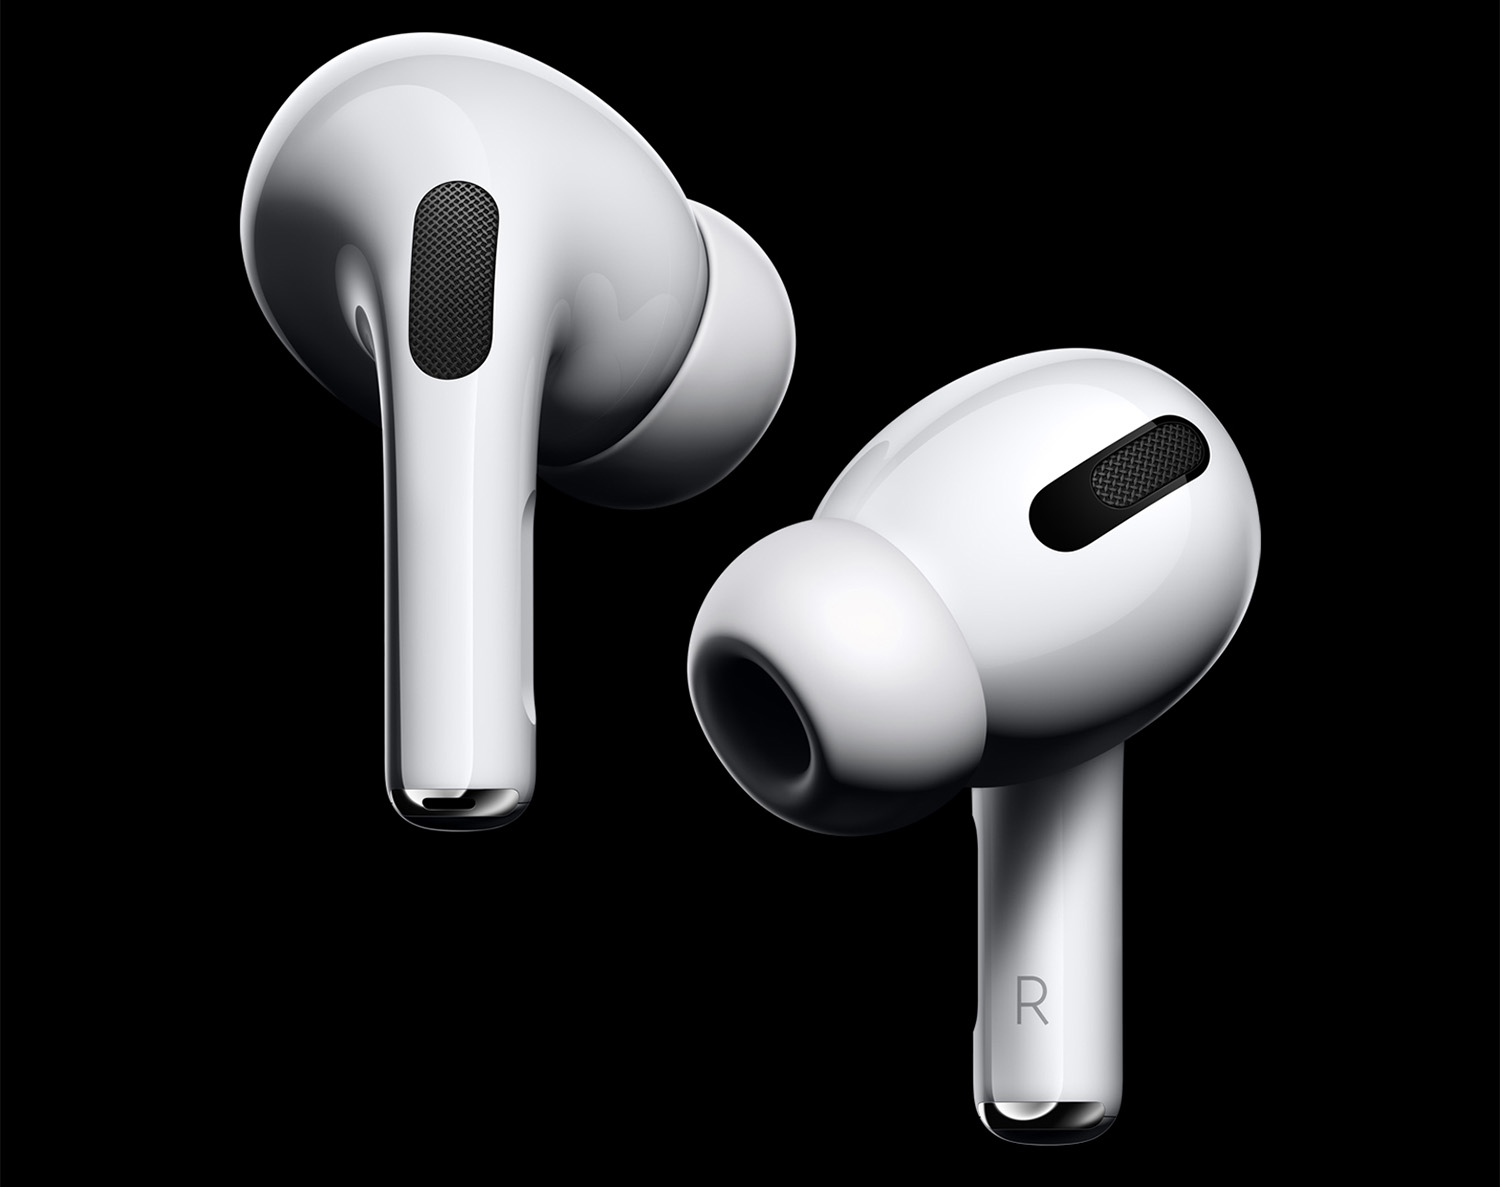 AirPods Pro Official; Brand New Design With Active Noise Cancellation,  Water-Resistance & So Much More